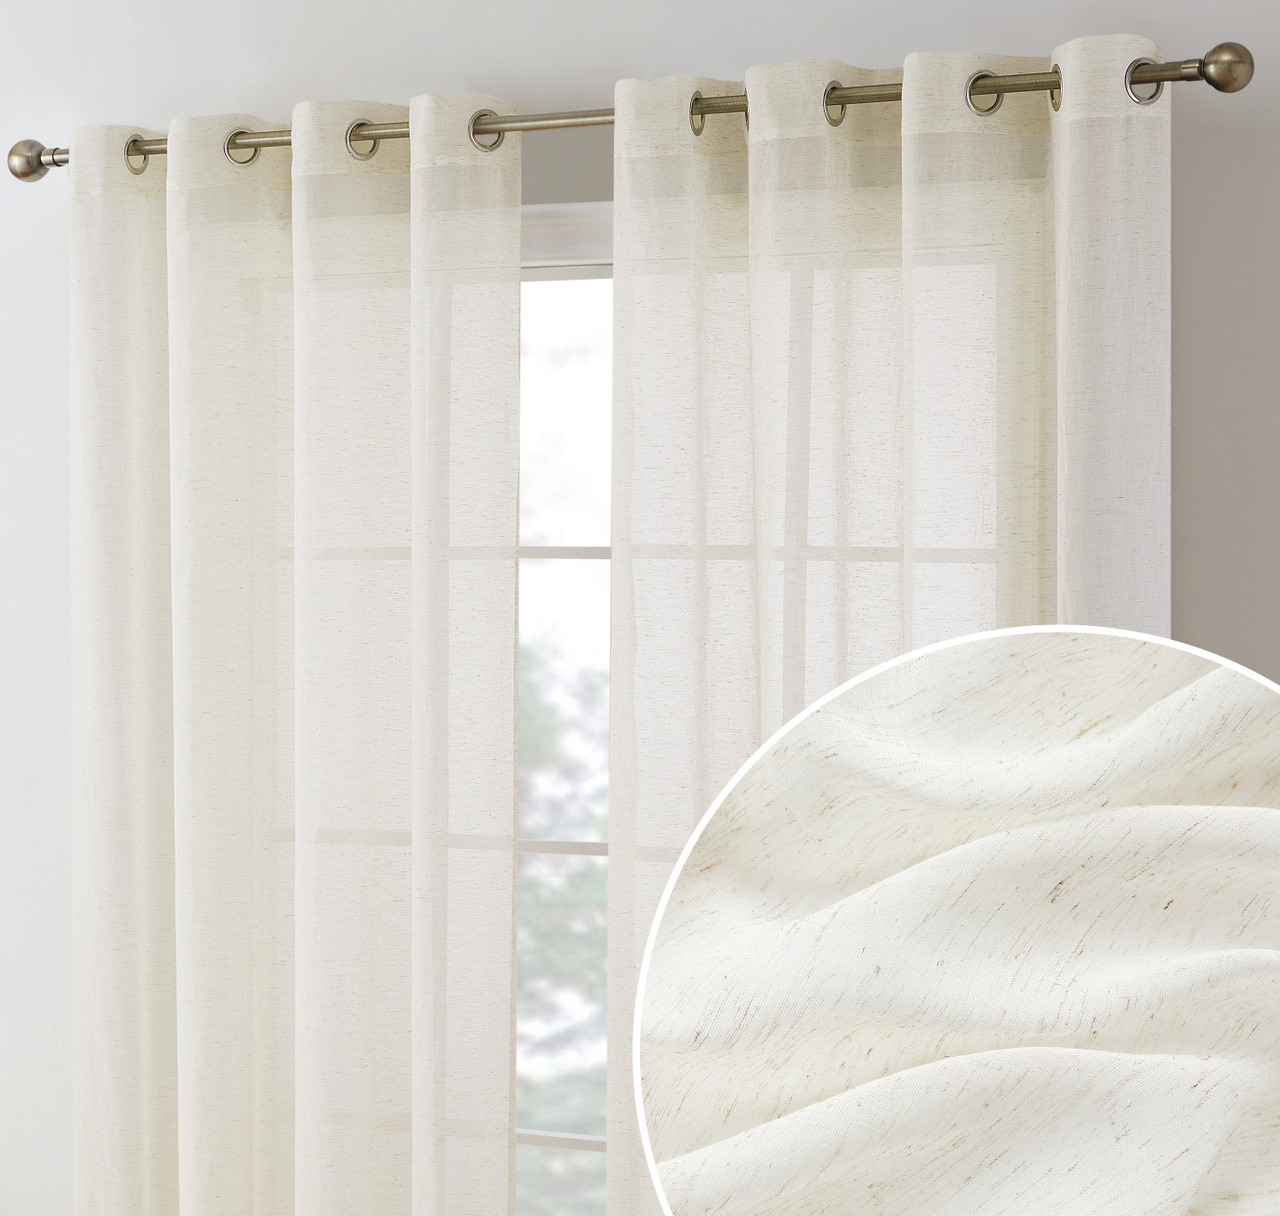 Curtains Sheer Curtains Faux Linen Curtains Page 1 Home Linen Collections Hlc Me